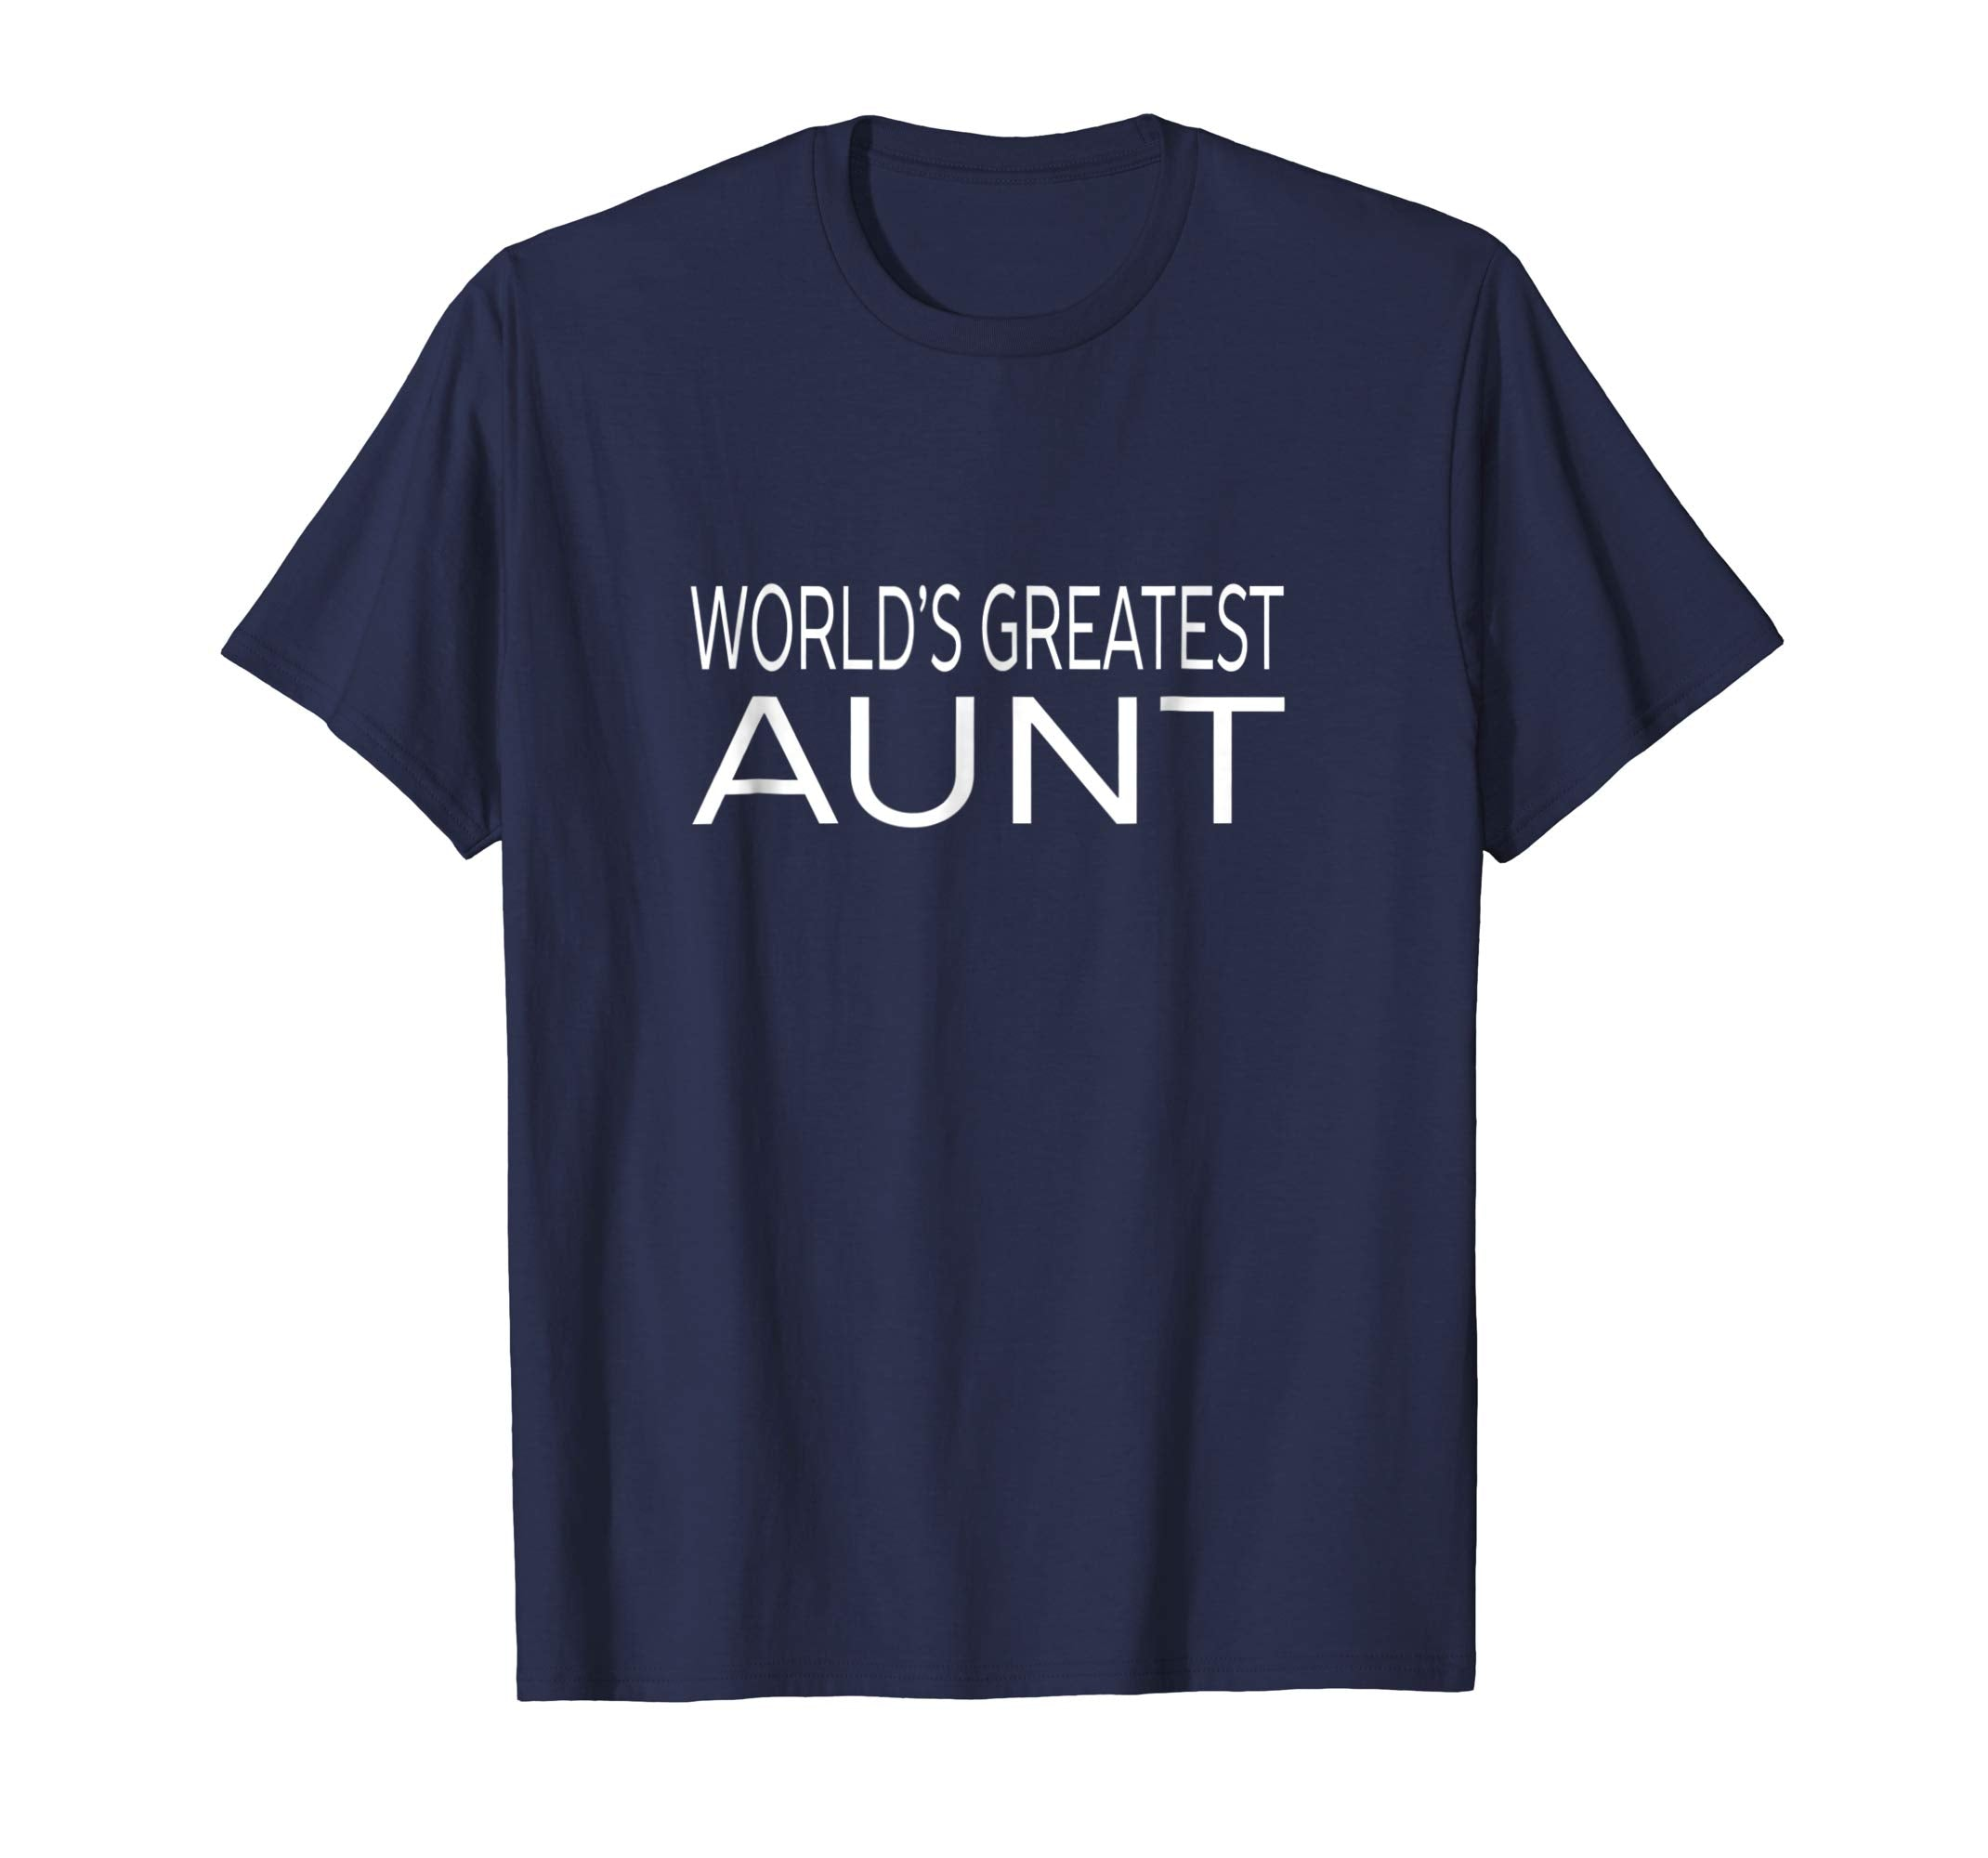 World's Greatest Aunt Relative Gifts Idea Women's T-shirt